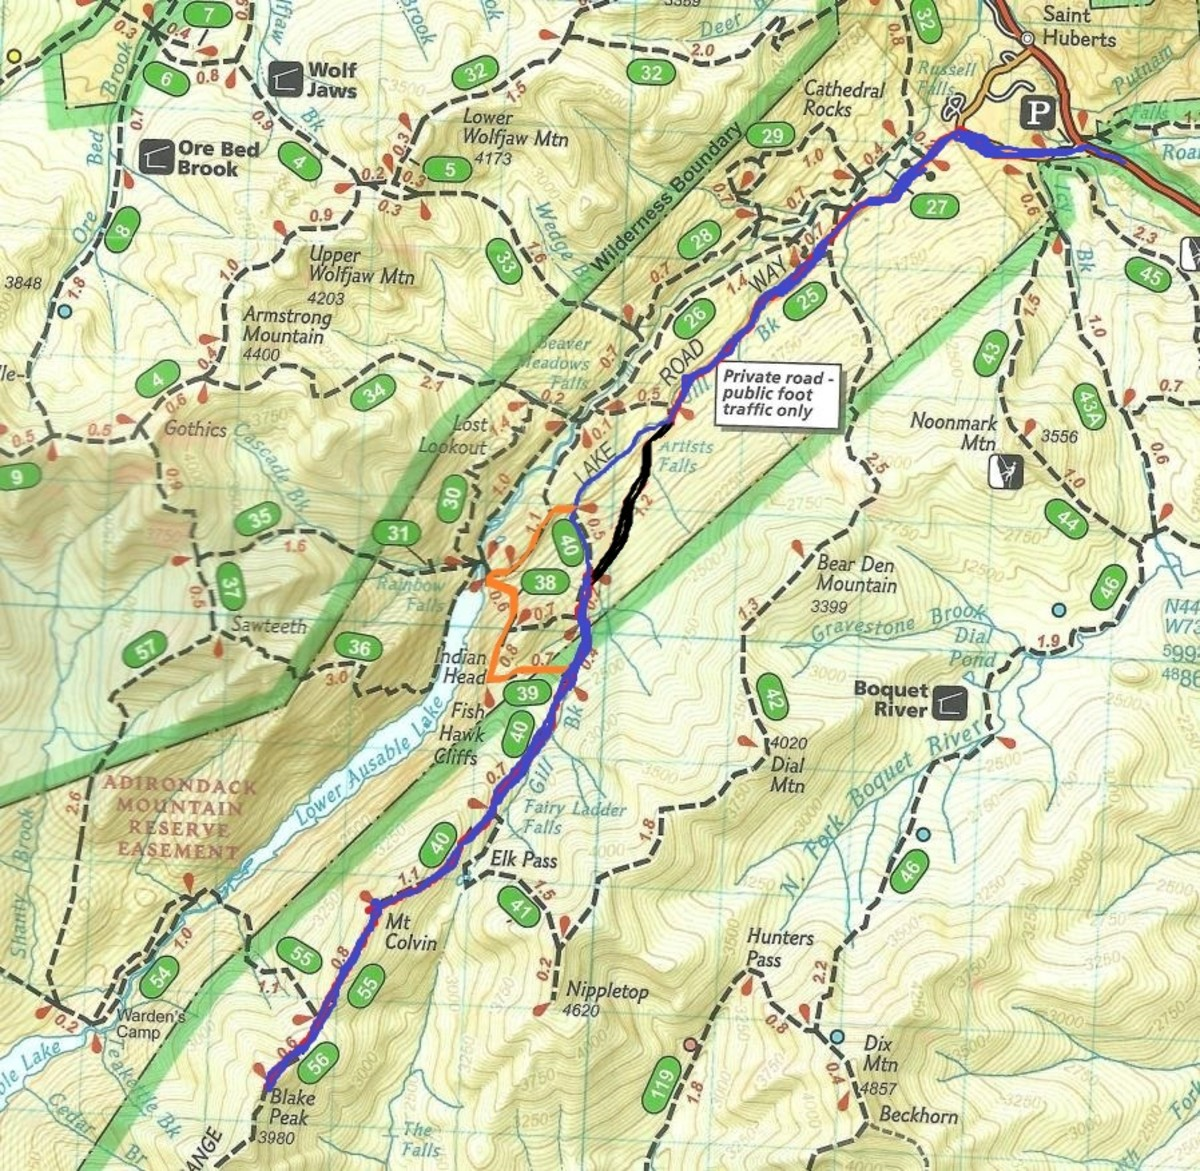 Our Planned Route in Blue, Return in Orange